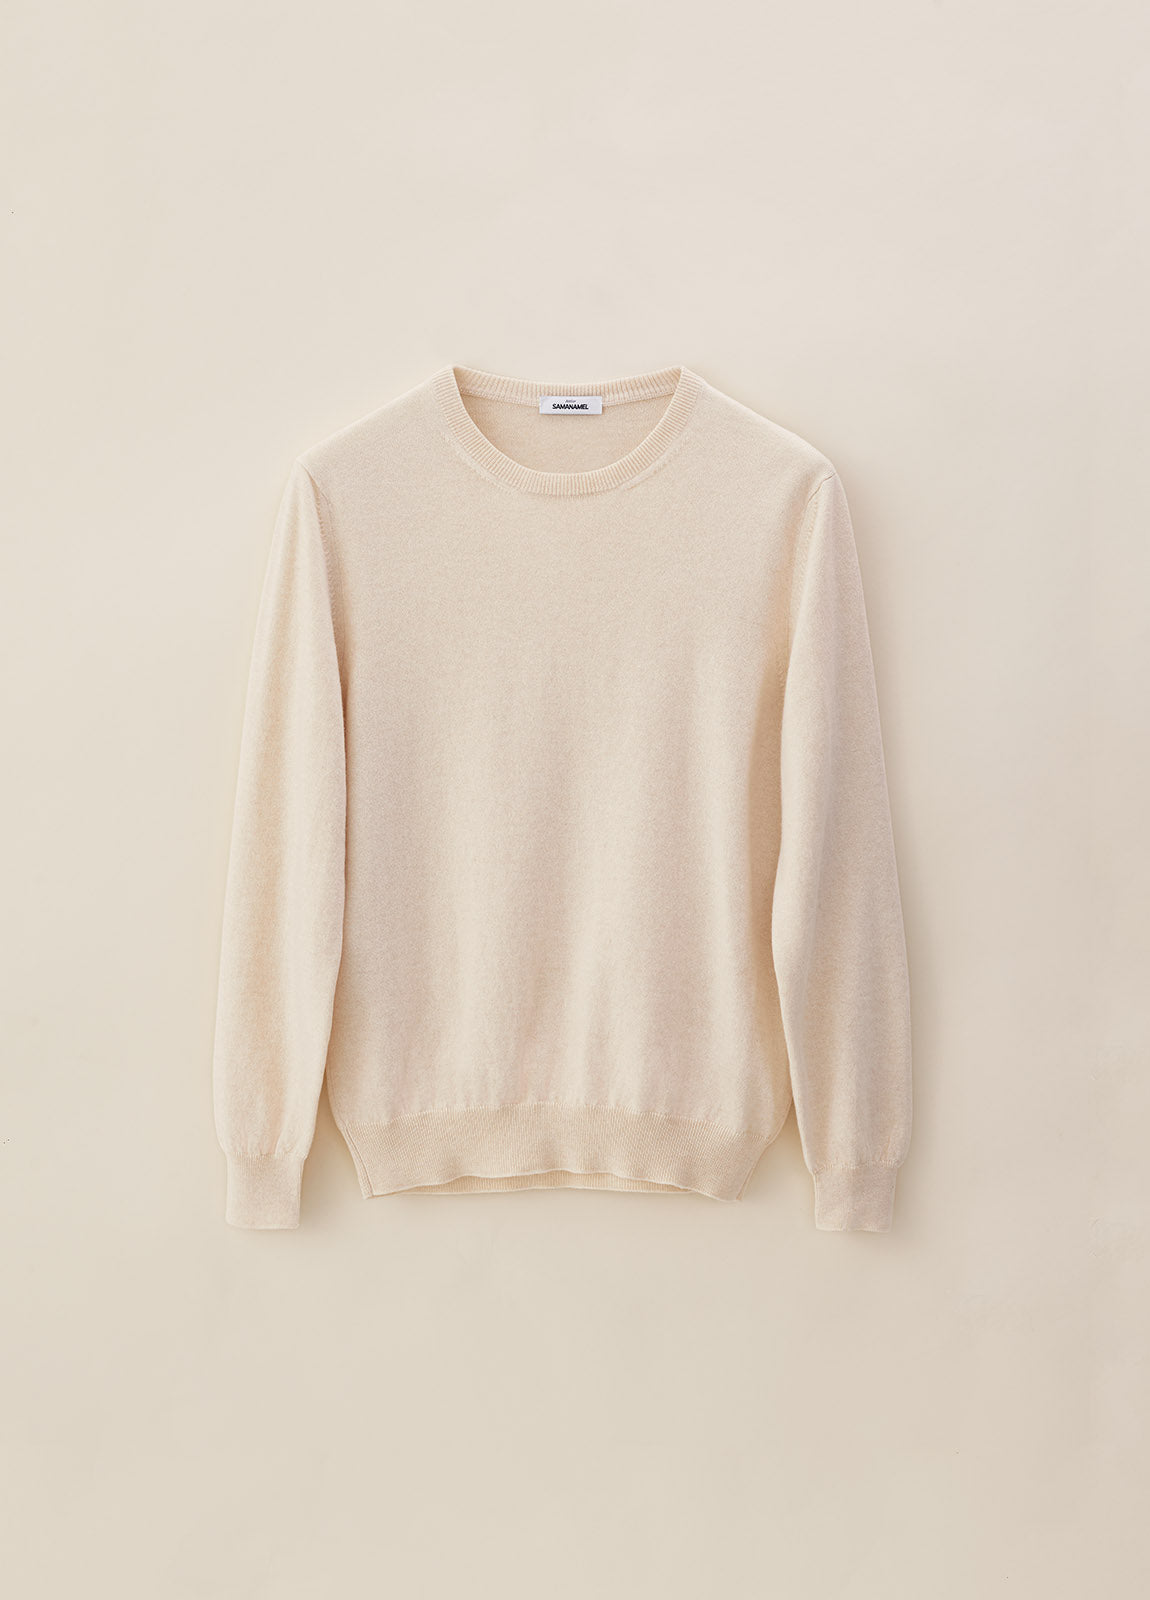 C Cashmere - Off White